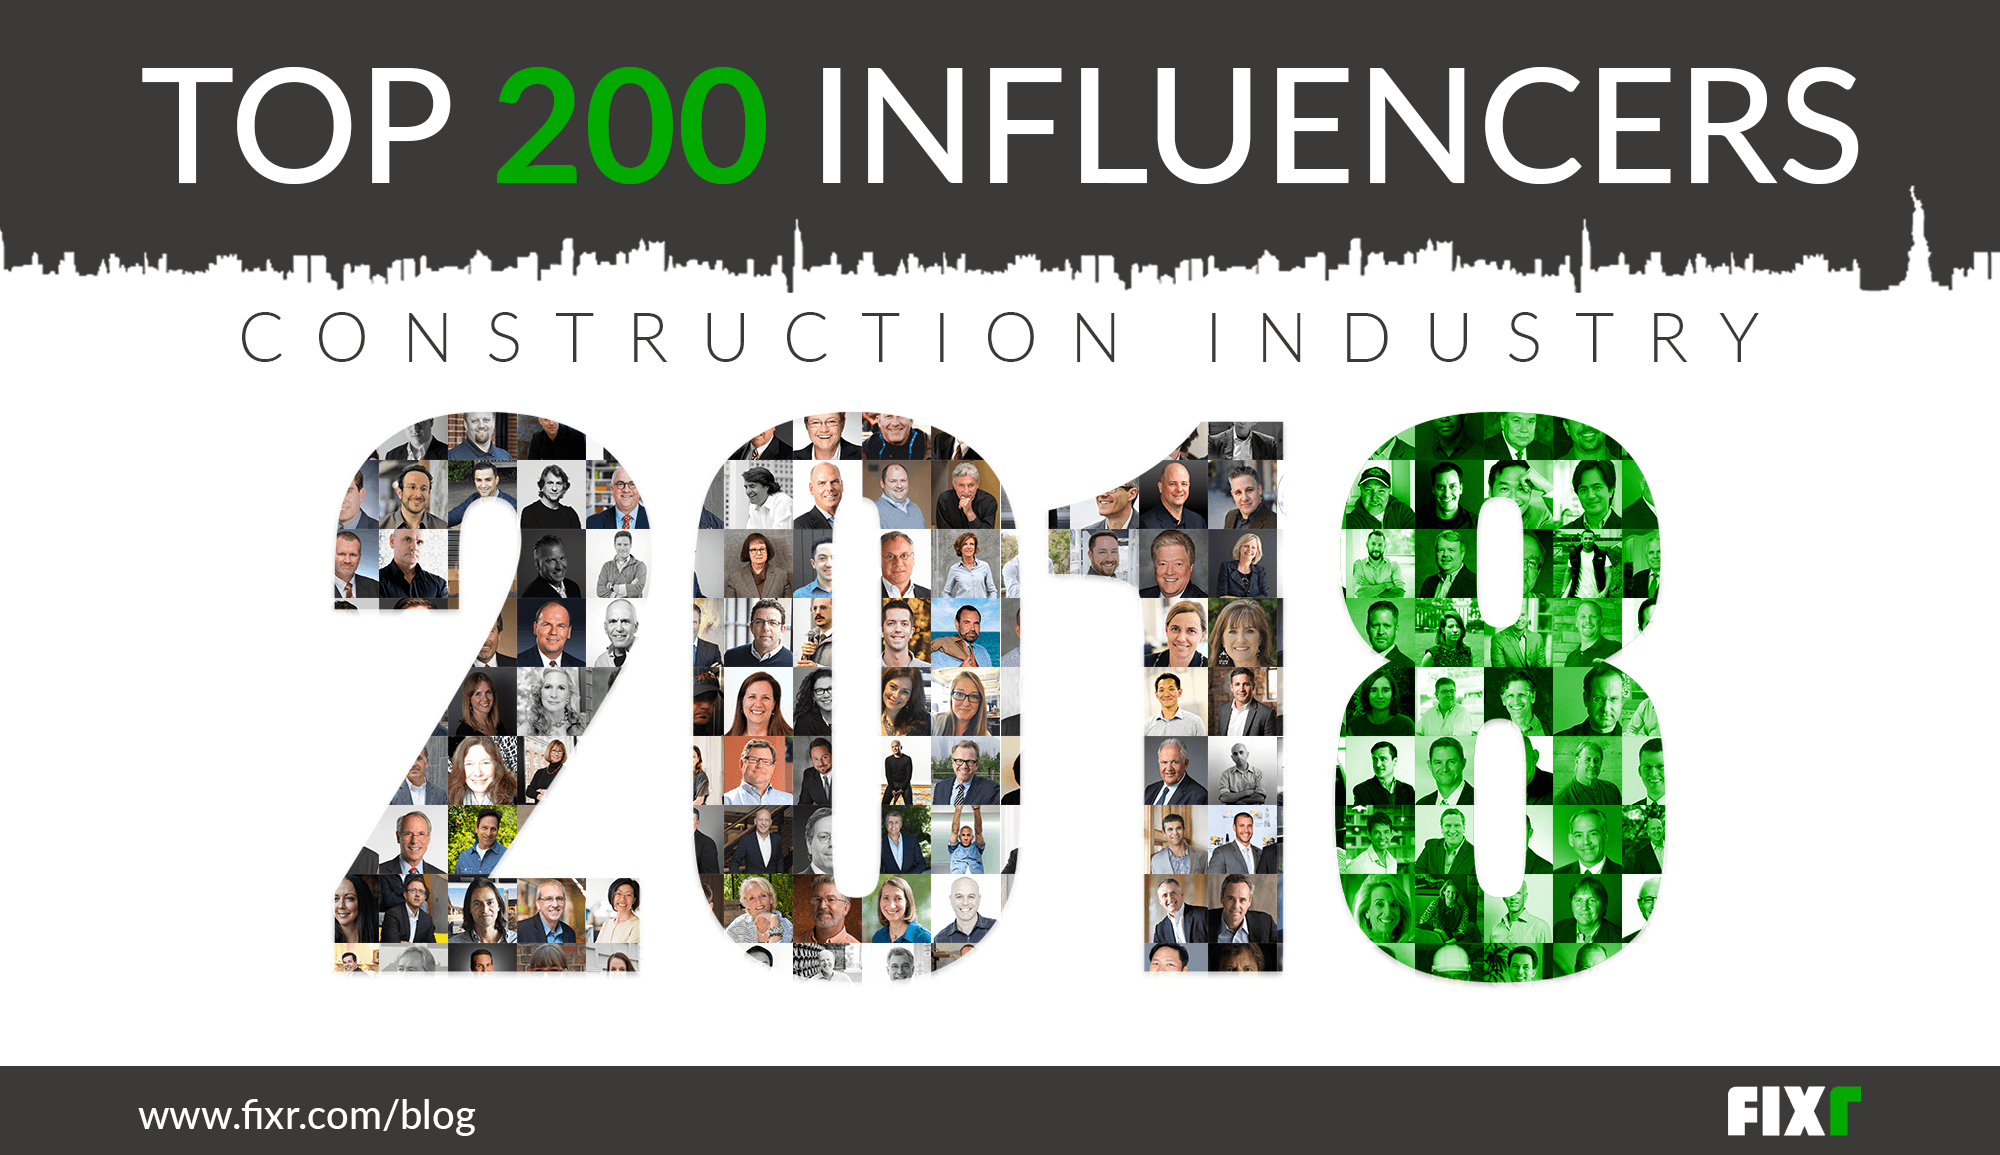 Top 200 Influencers in the Construction Industry 2018